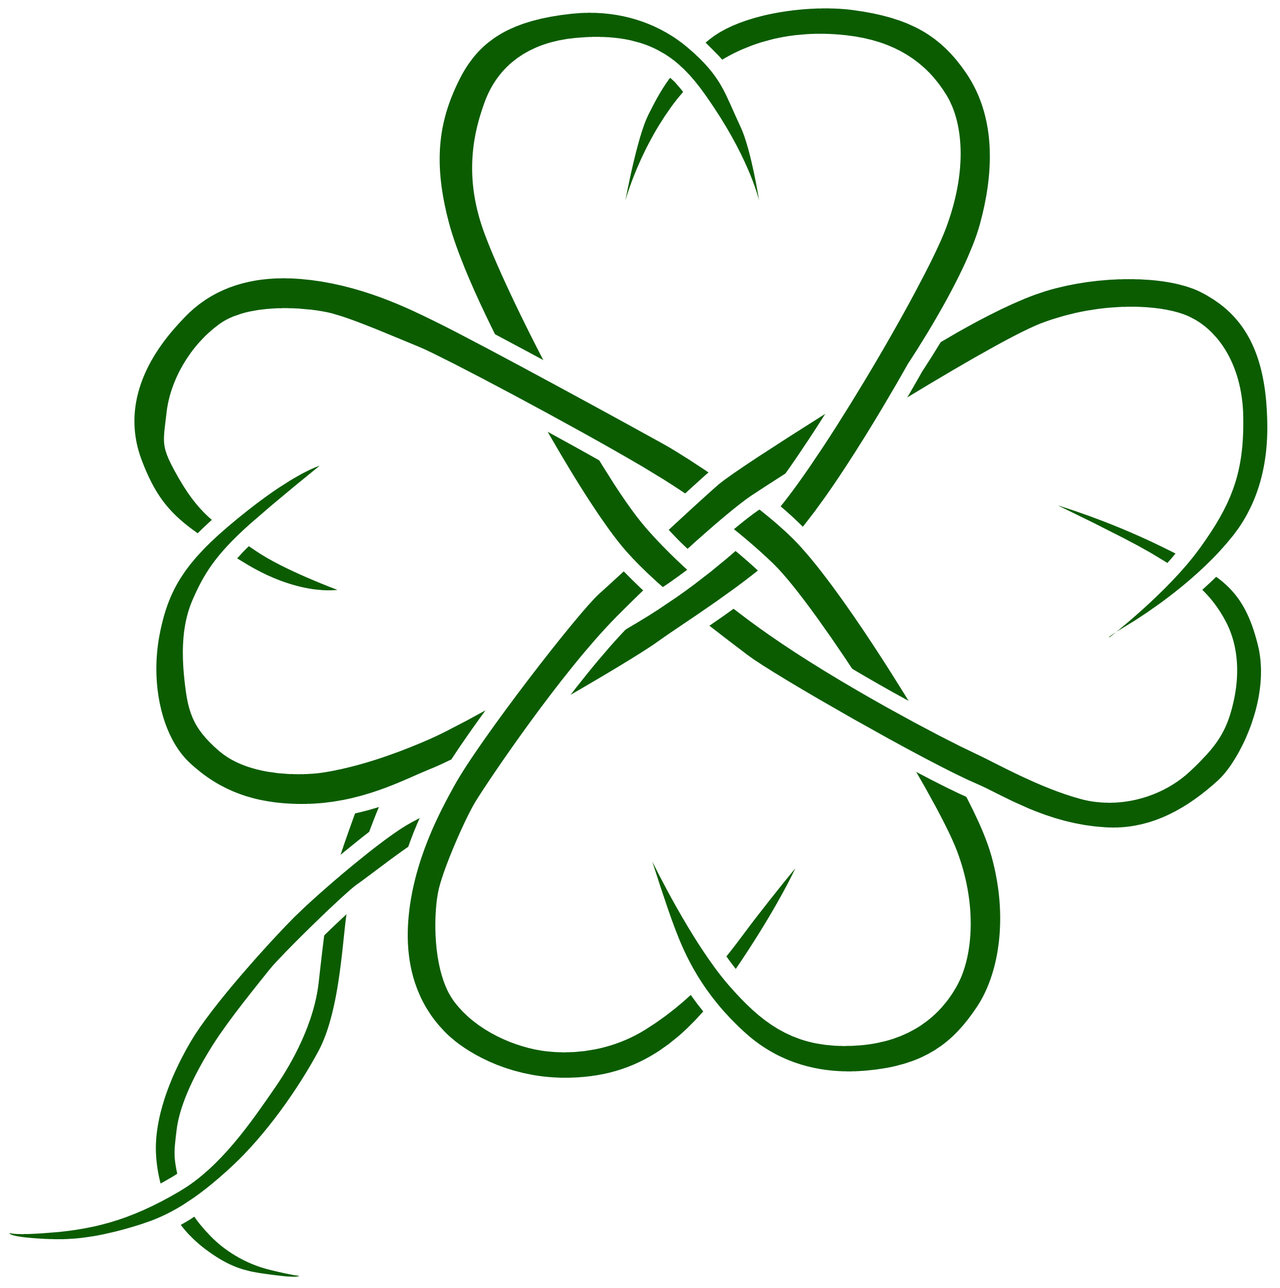 Four Leaf Clover Tattoos Designs, Ideas and Meaning | Tattoos For You: www.tattoosforyou.org/four-leaf-clover-tattoos.php